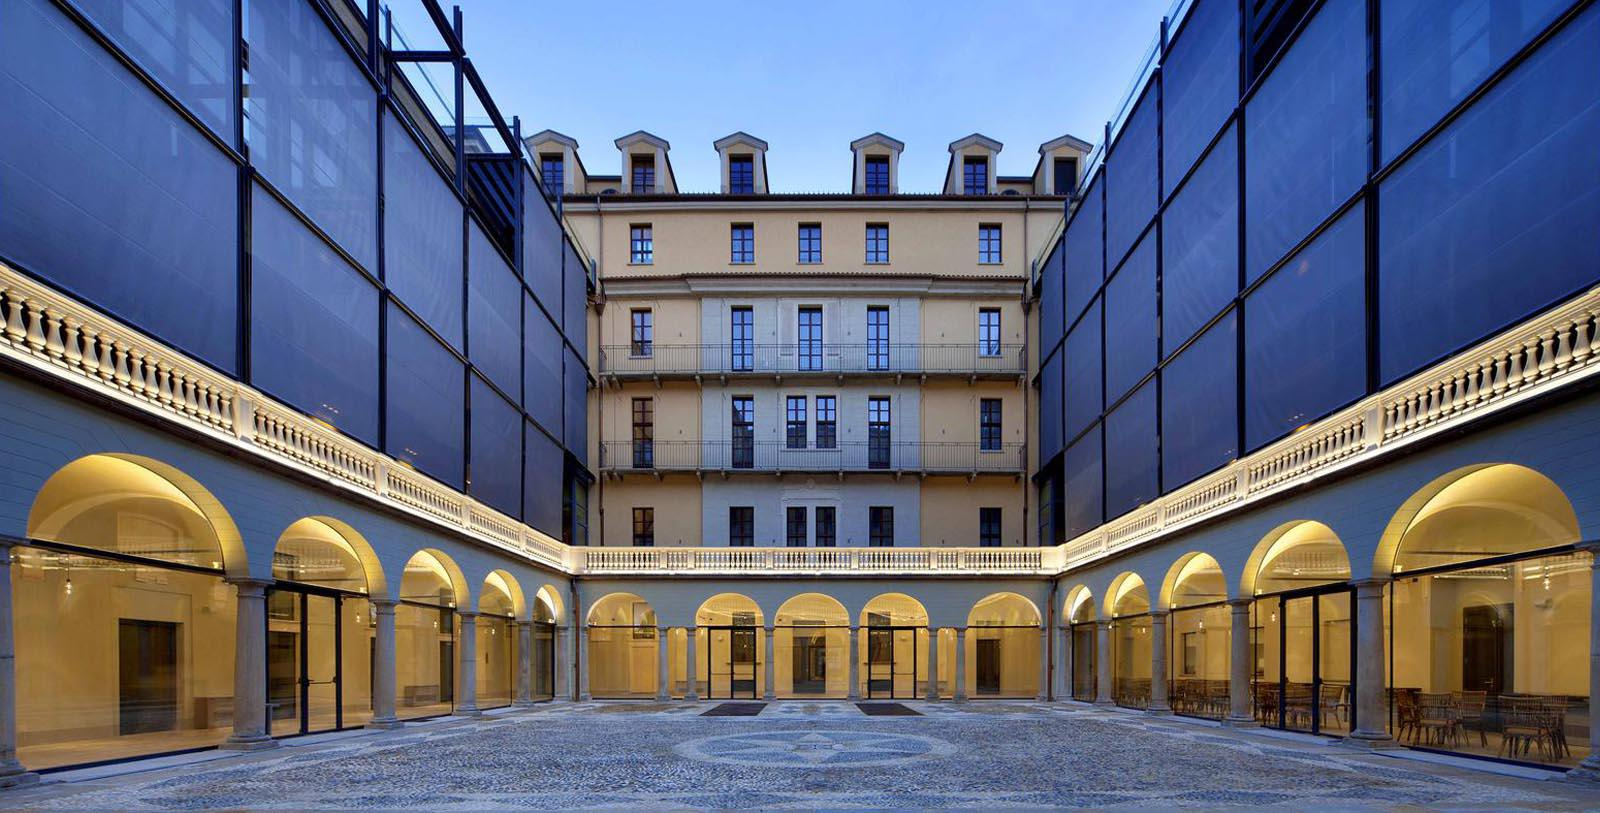 Image of Courtyard NH Collection Turin Piazza Carlina, 17th Century, Member of Historic Hotels Worldwide, in Turin, Italy, Special Offers, Discounted Rates, Families, Romantic Escape, Honeymoons, Anniversaries, Reunions